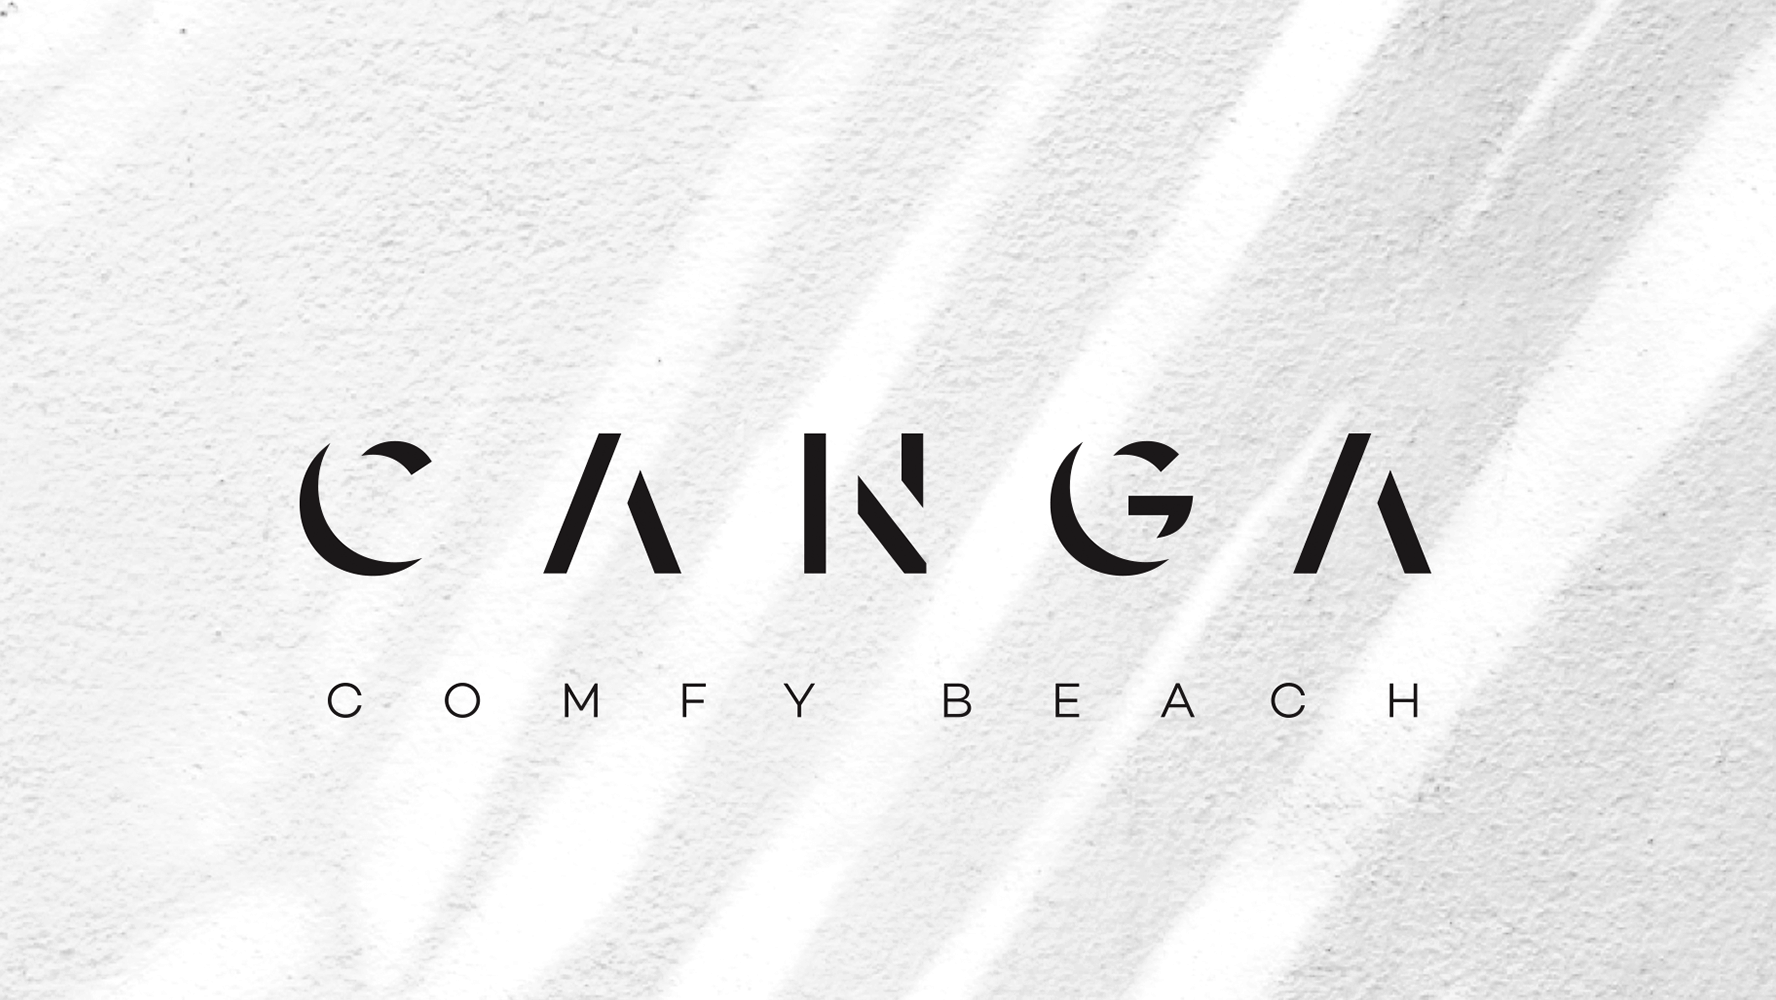 CANGA Branding and Pattern